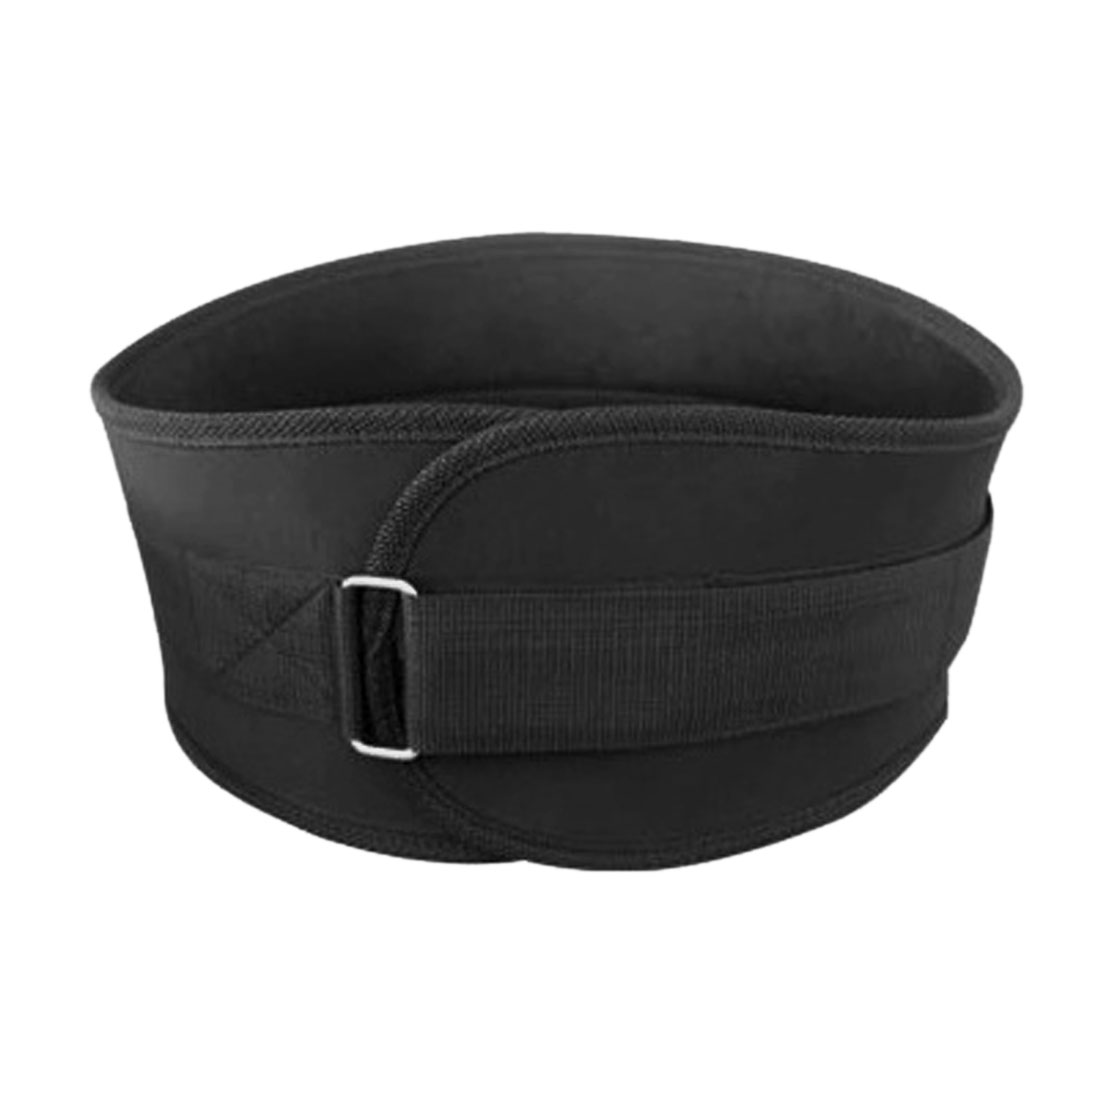 Black L Size Unisex Adjustable Lumbar Lower Waist Back Support Brace Belt Strap